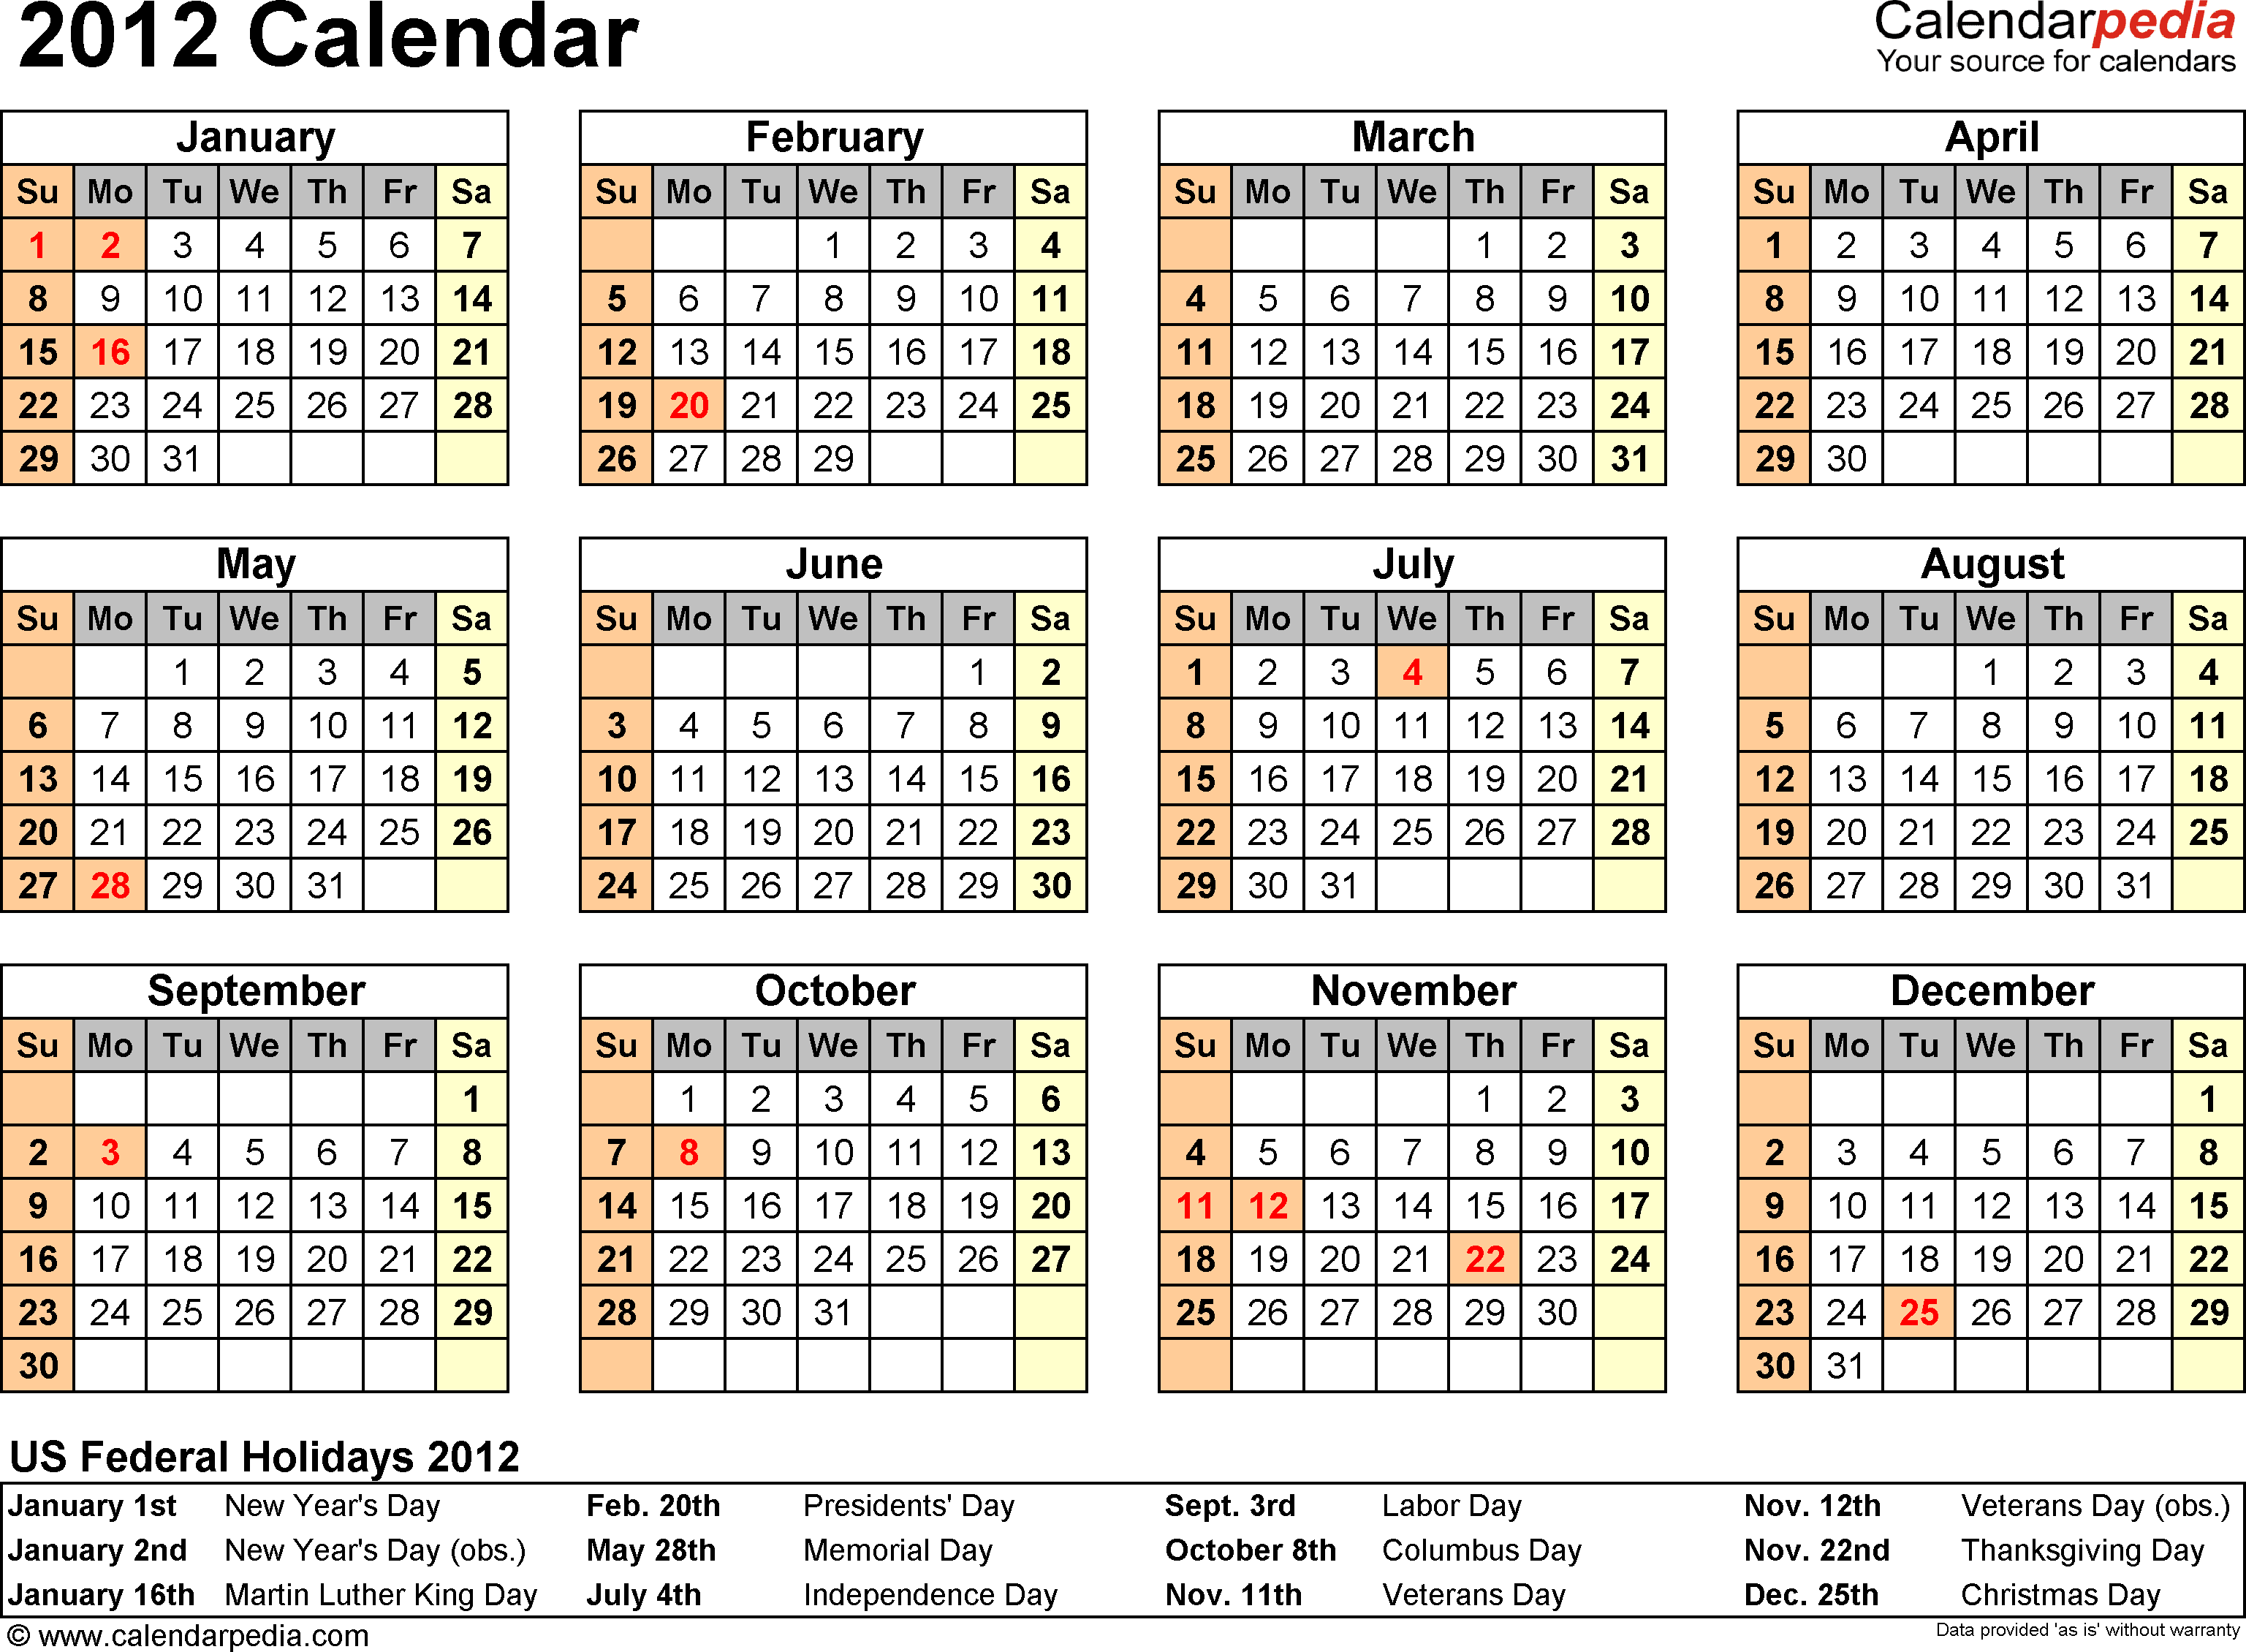 Download Download Word template for 2012 calendar template 6: year at a glance, 1 page